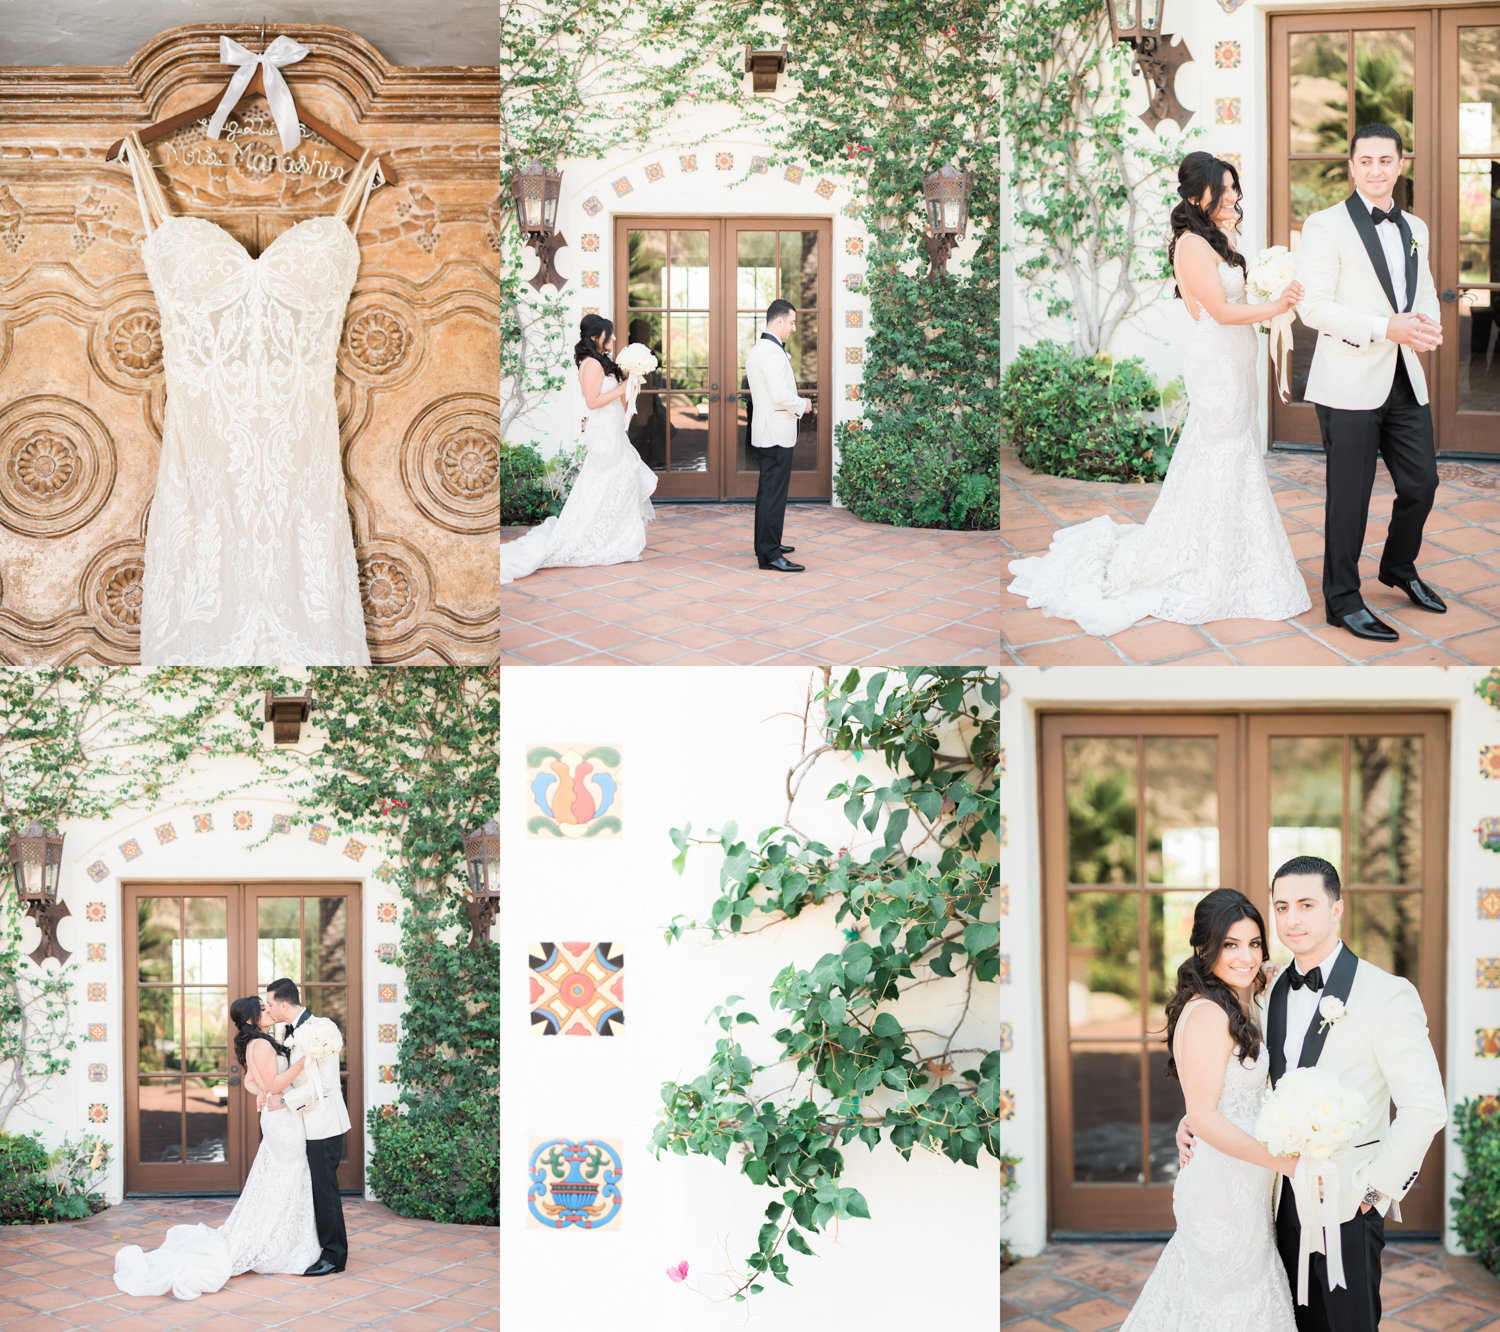 azer&michelle_hummingbird_nest_ranch_wedding_fine_art_photographer_los_angeles-12.jpg